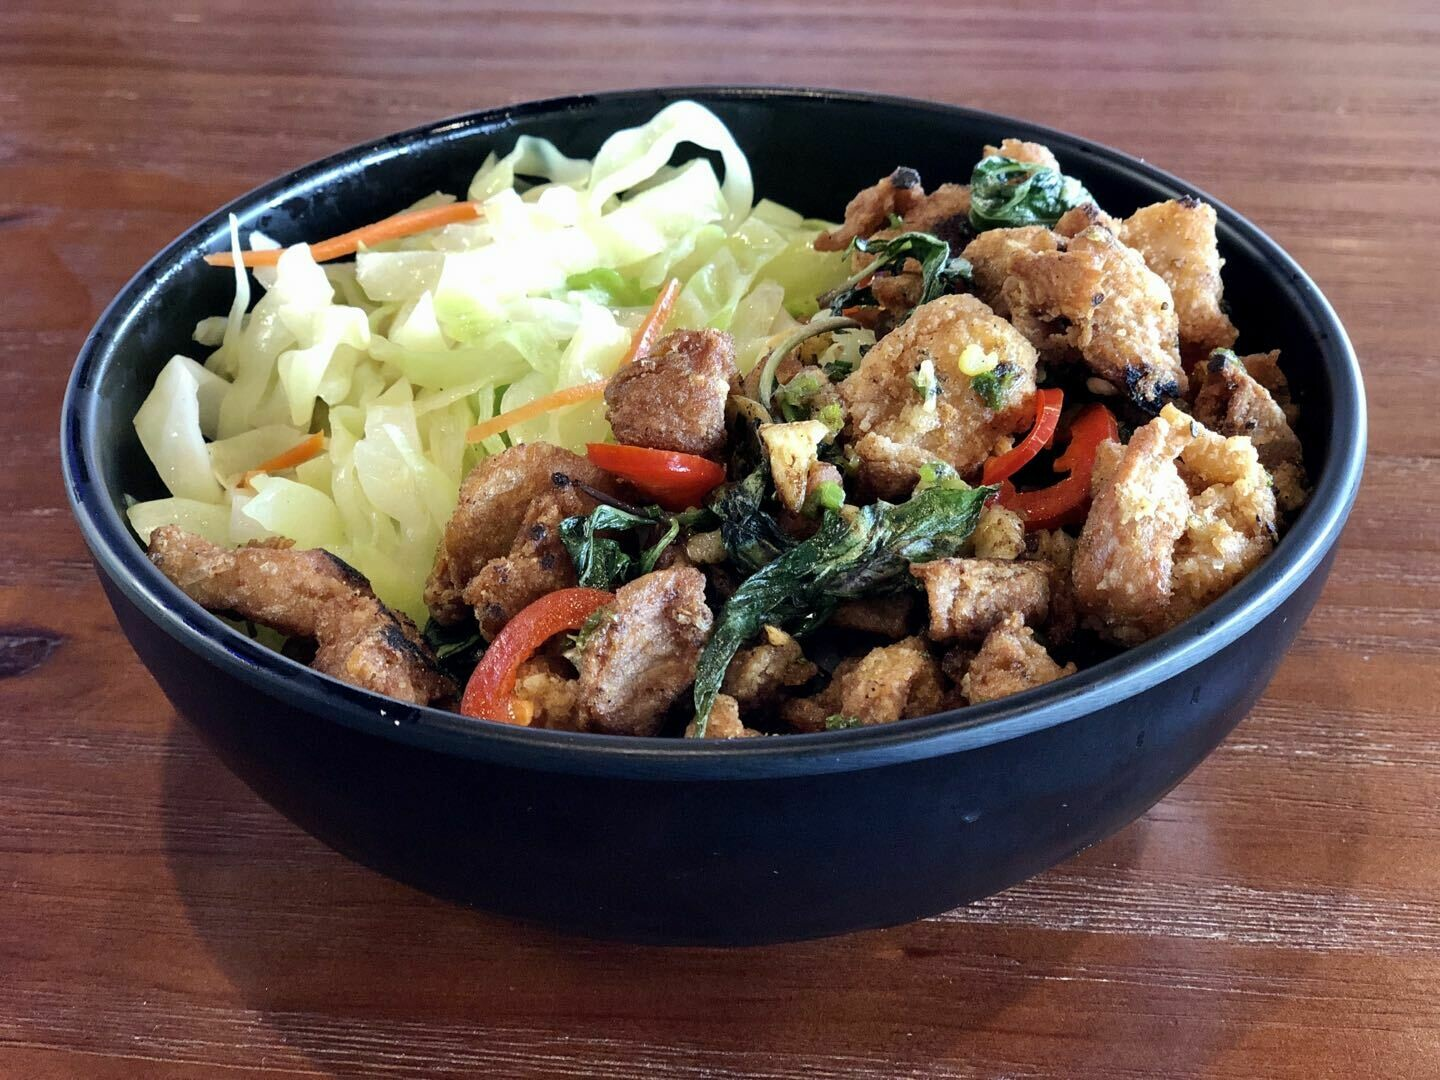 【Asia Blue】盐酥鸡饭 Salt and Pepper (Popcorn) Chicken With Minced Pork